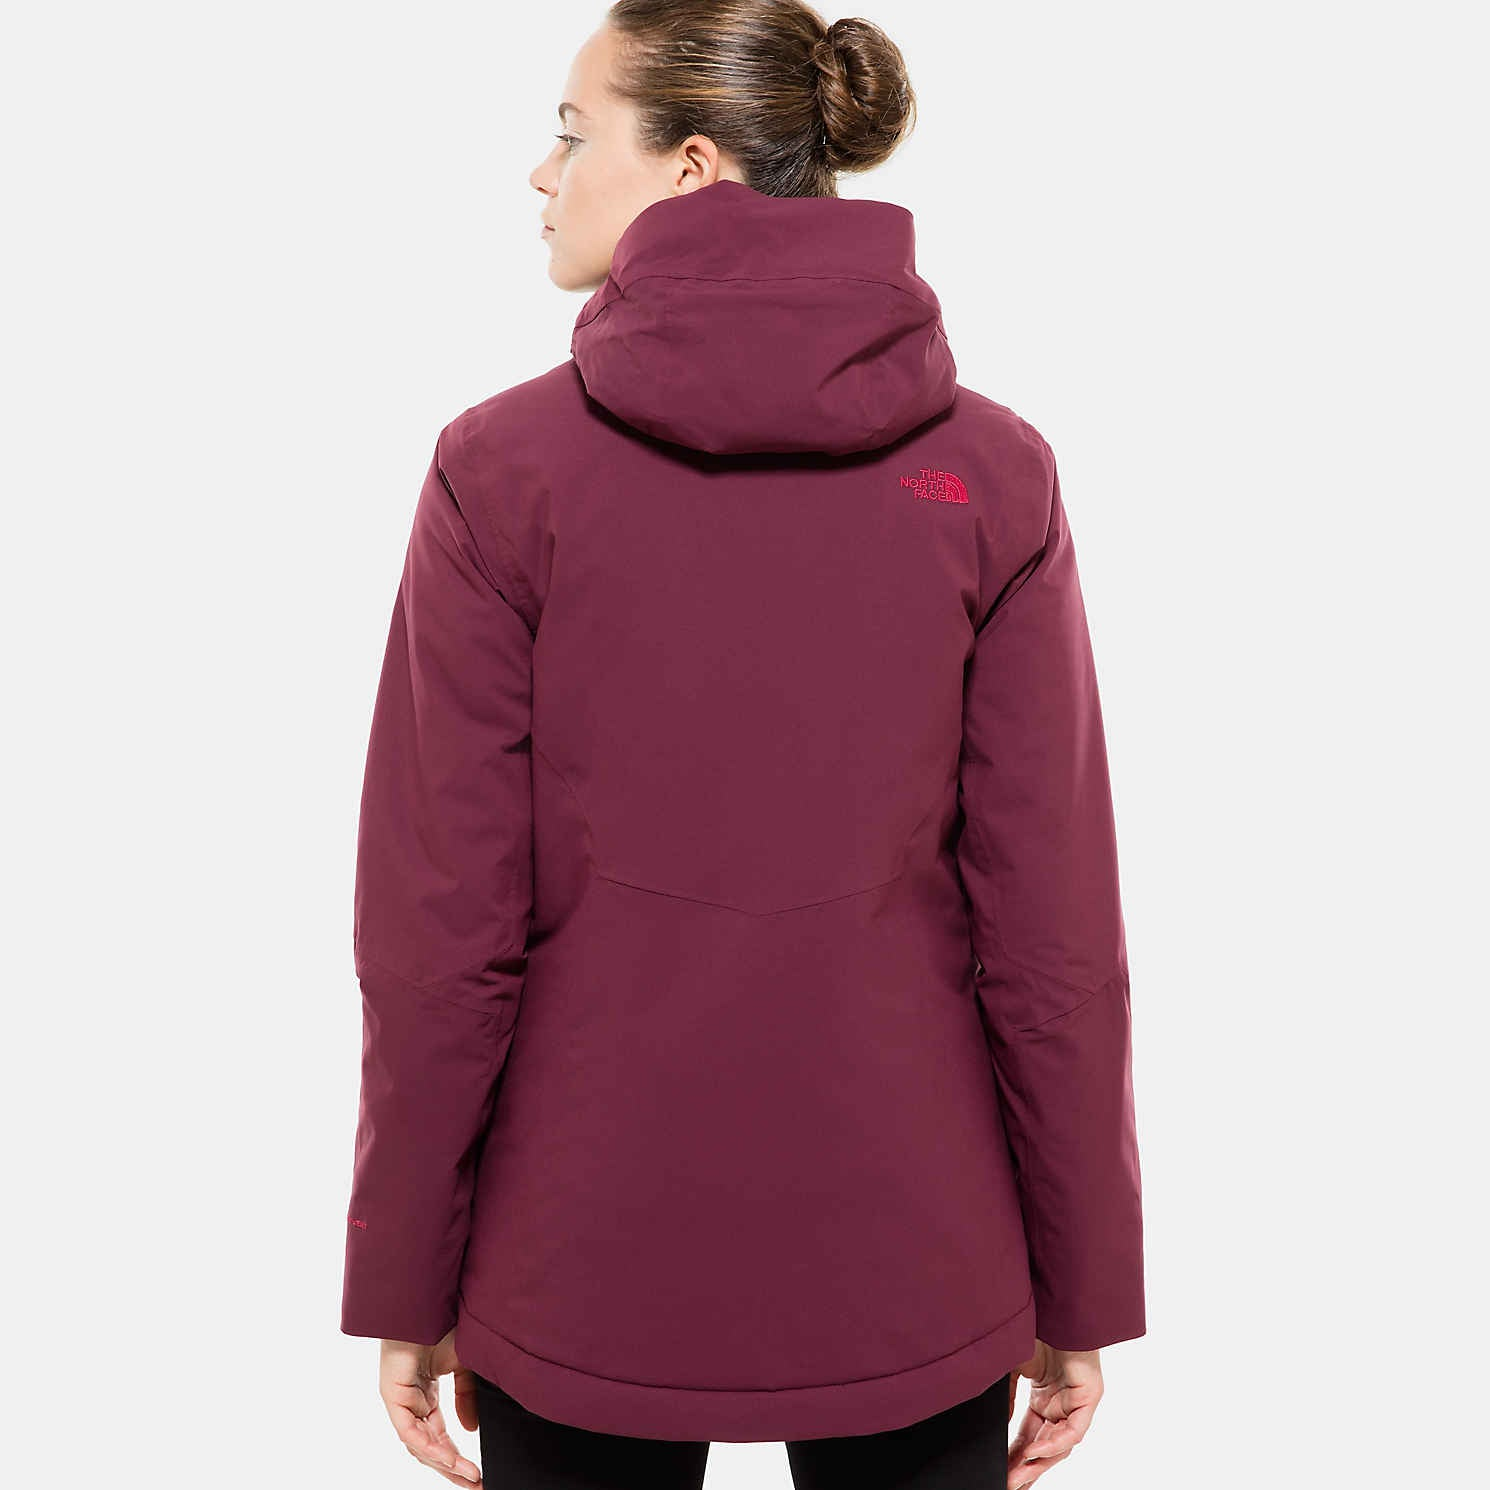 e6b4677c5 The North Face Womens Inlux Insulated Jacket